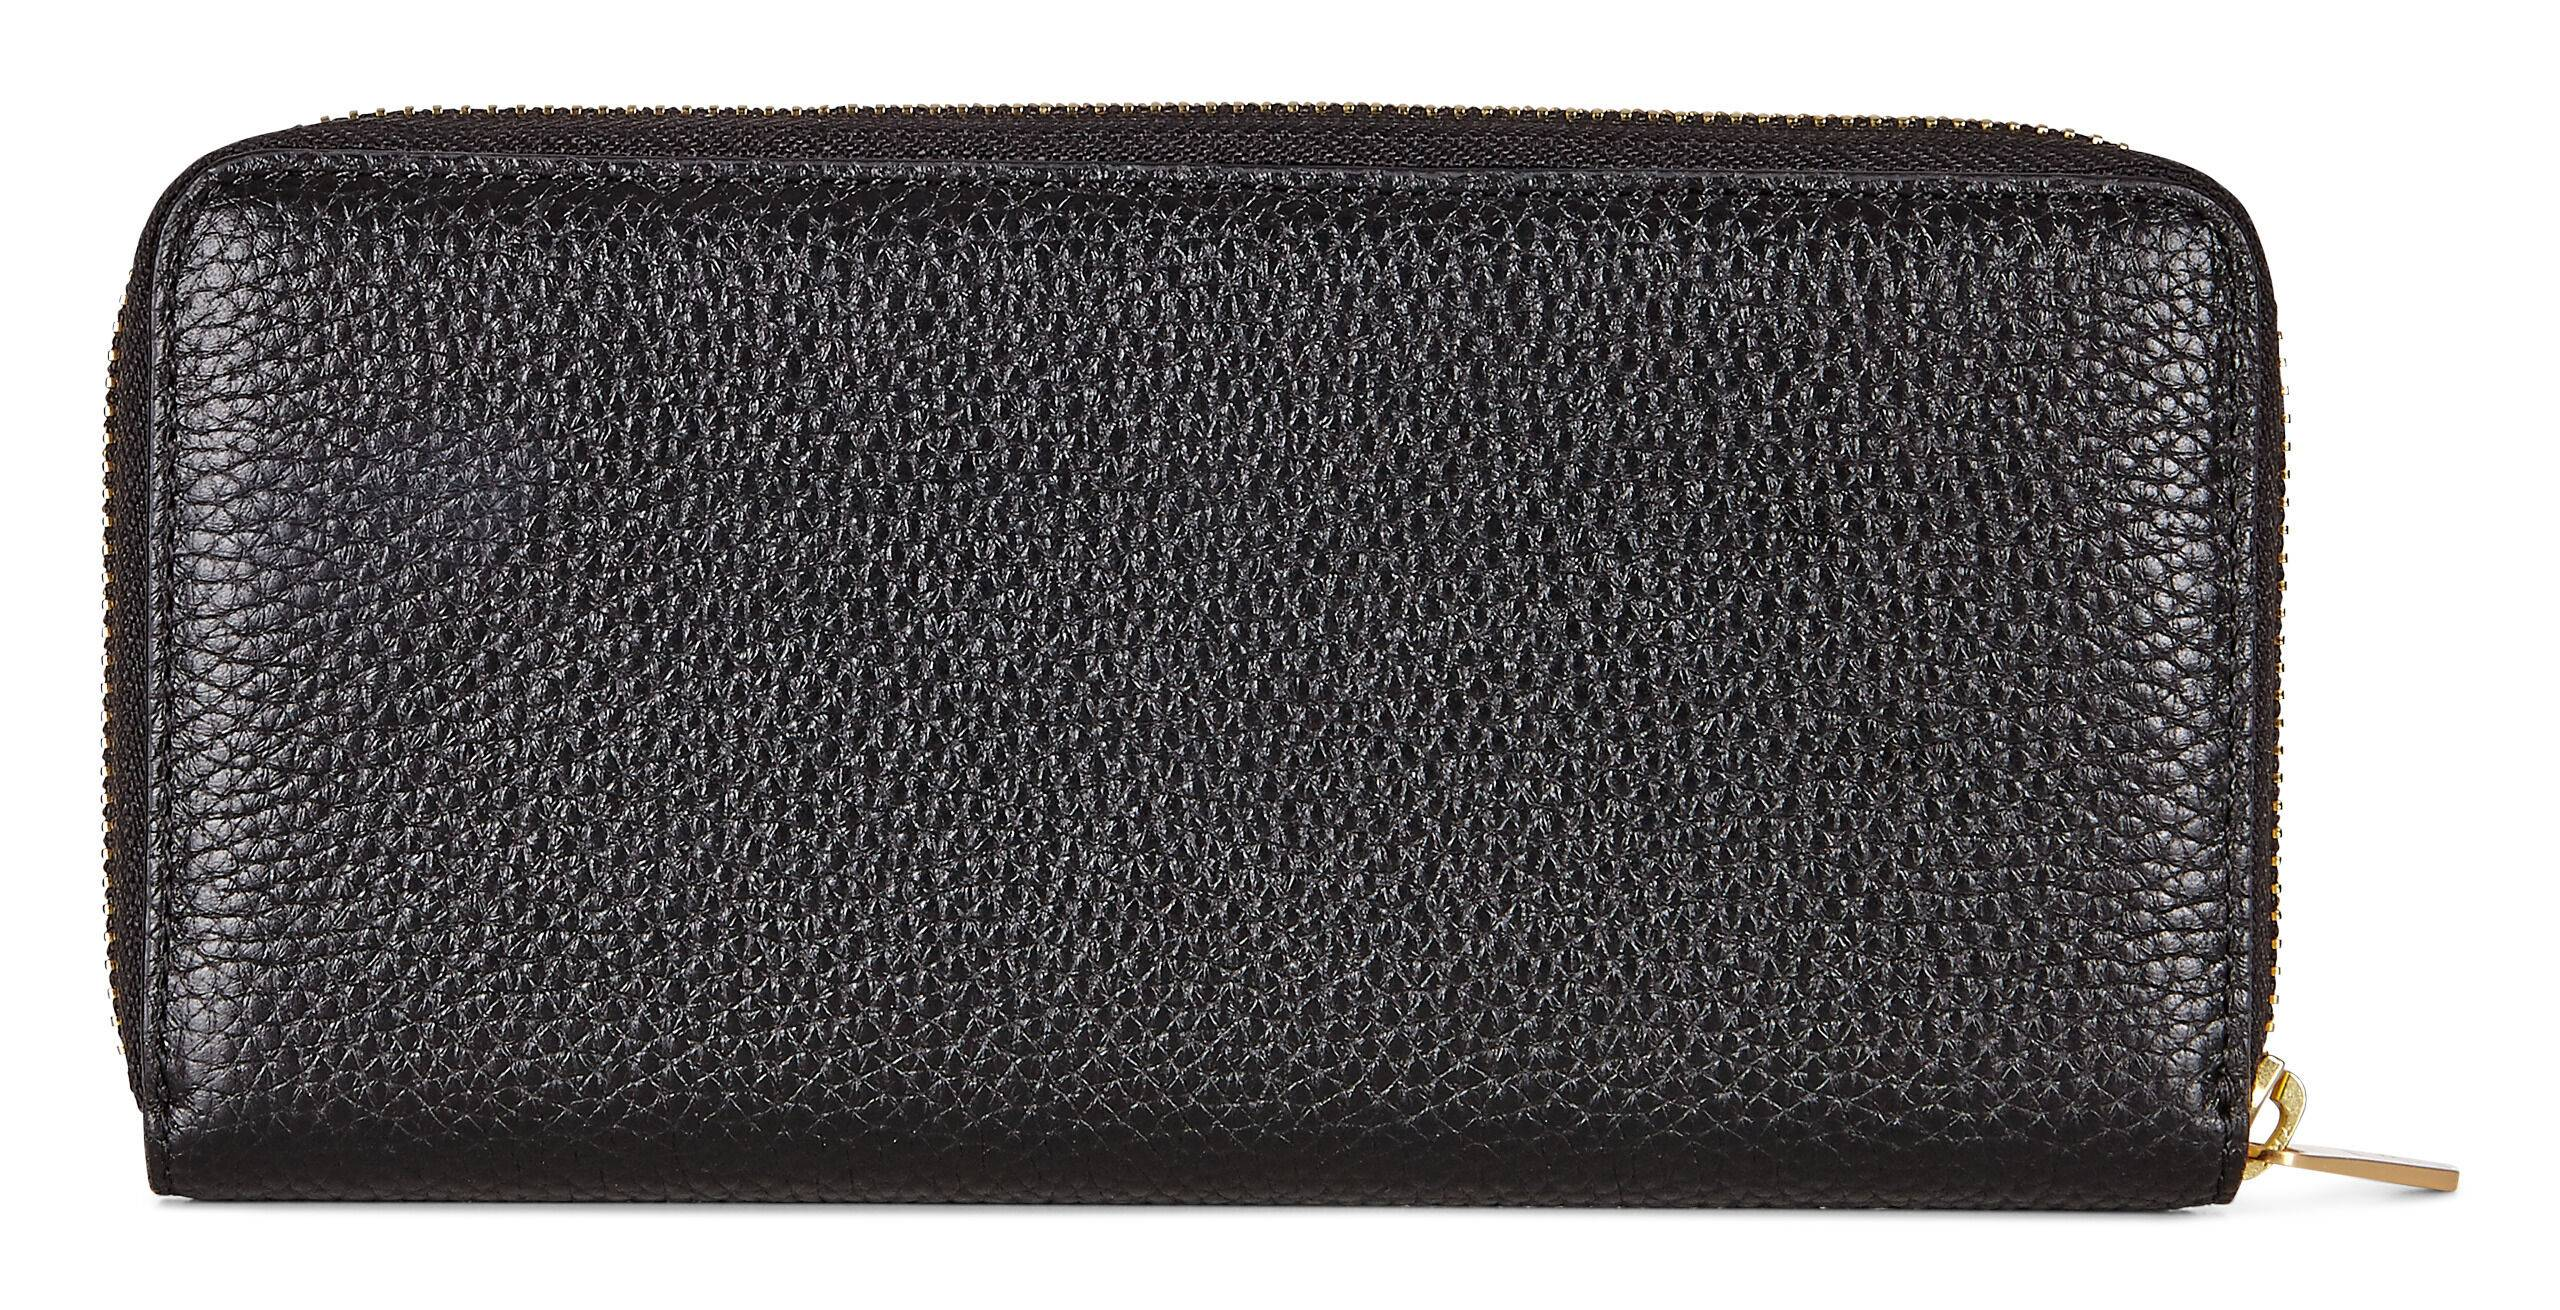 ECCO Isan 2 Large Zip Wallet: One Size - Black